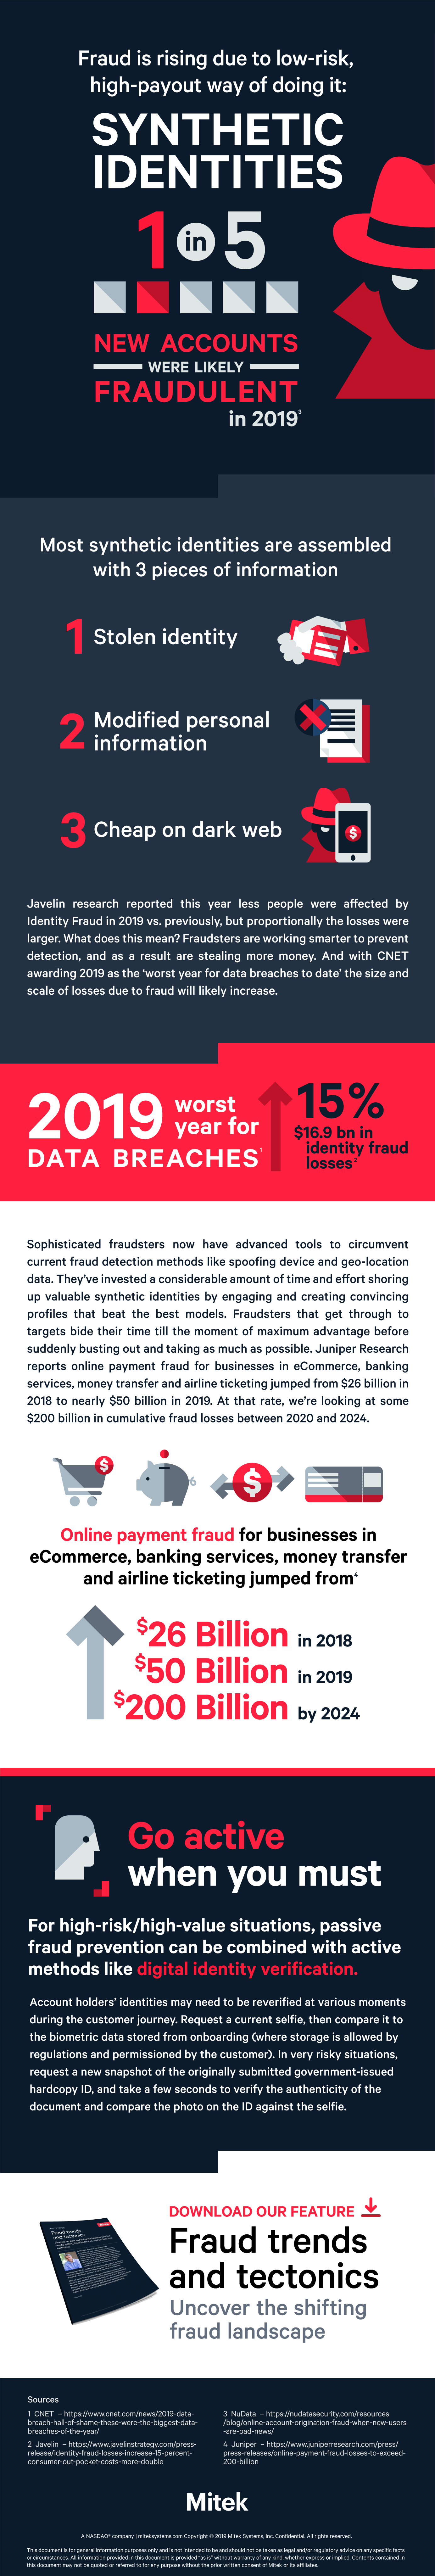 Synthetic Identities Fraud Infographic